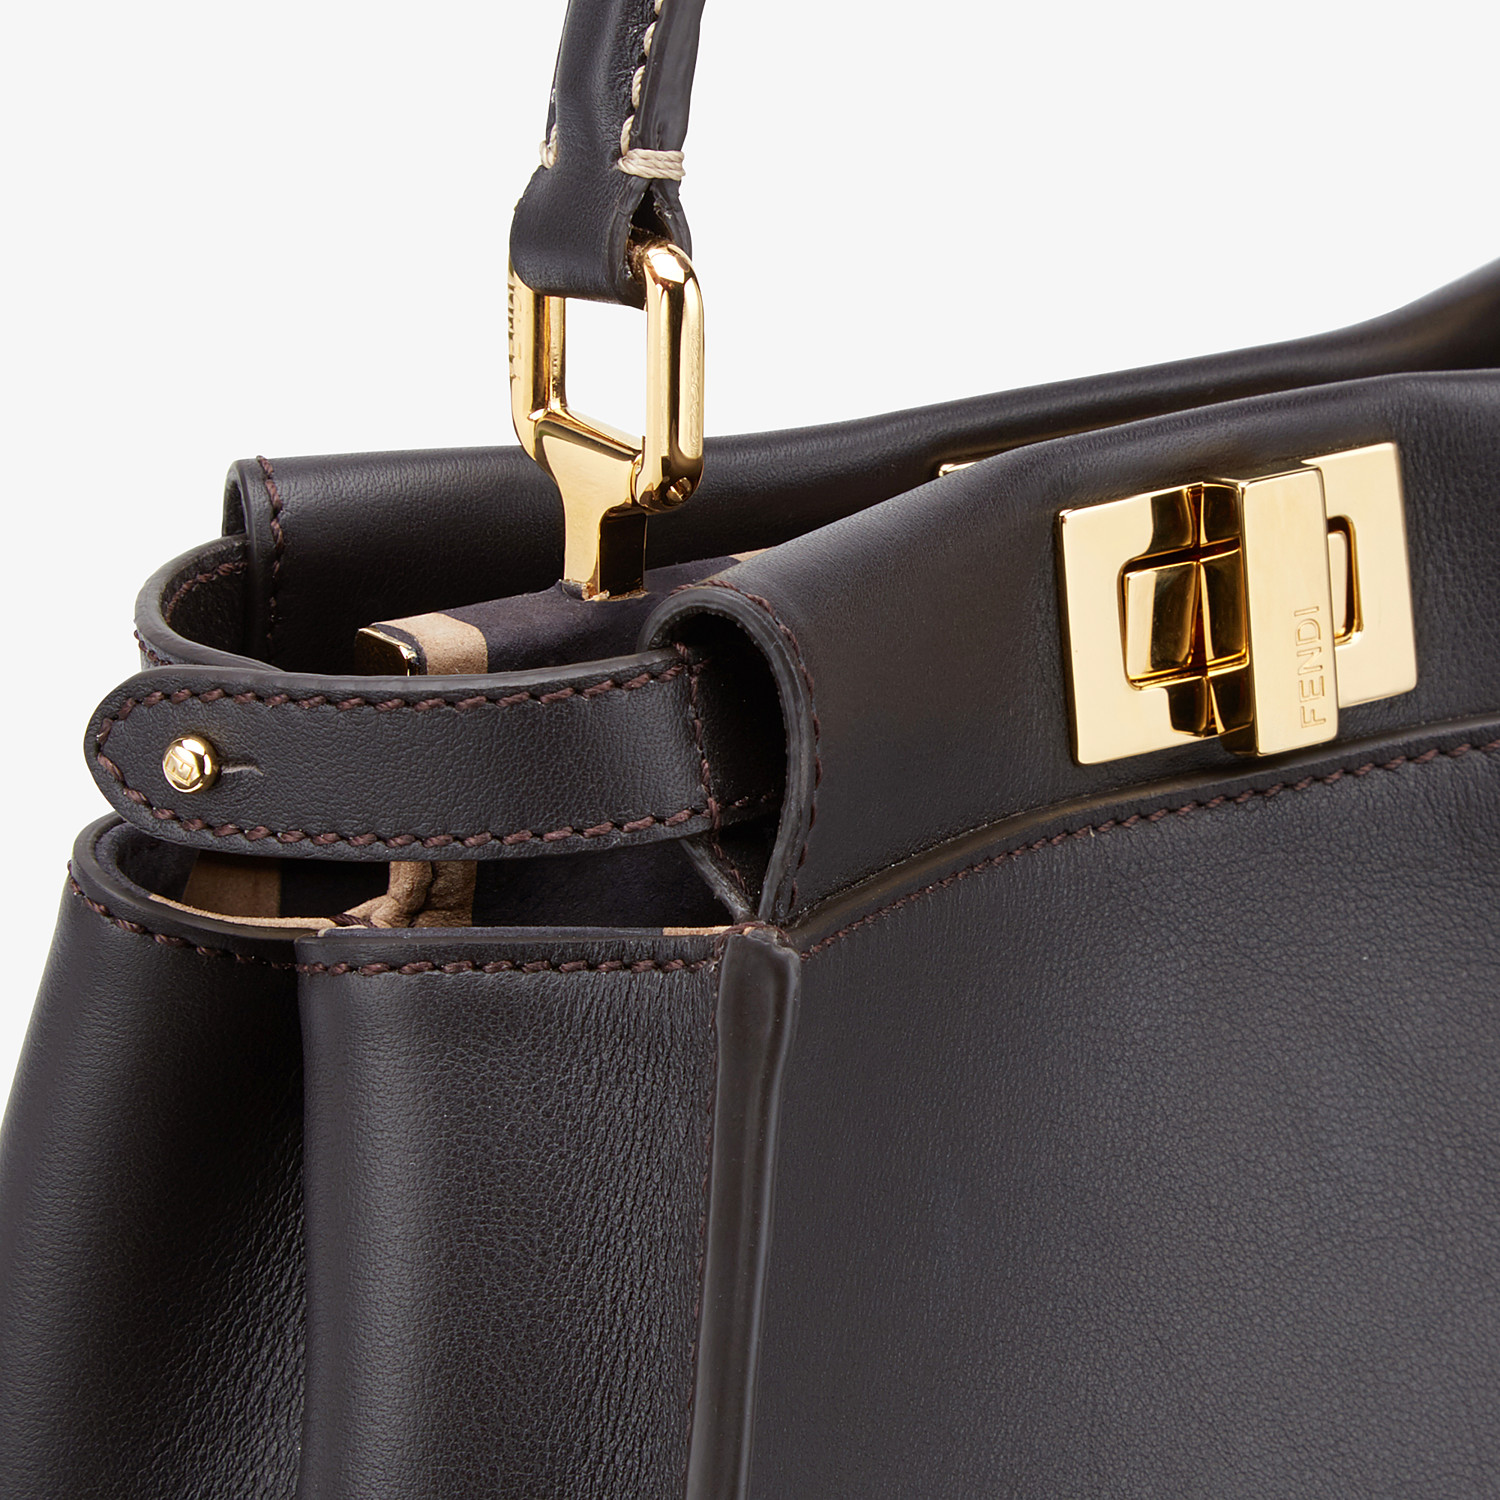 FENDI PEEKABOO ICONIC MINI - Brown leather bag - view 6 detail